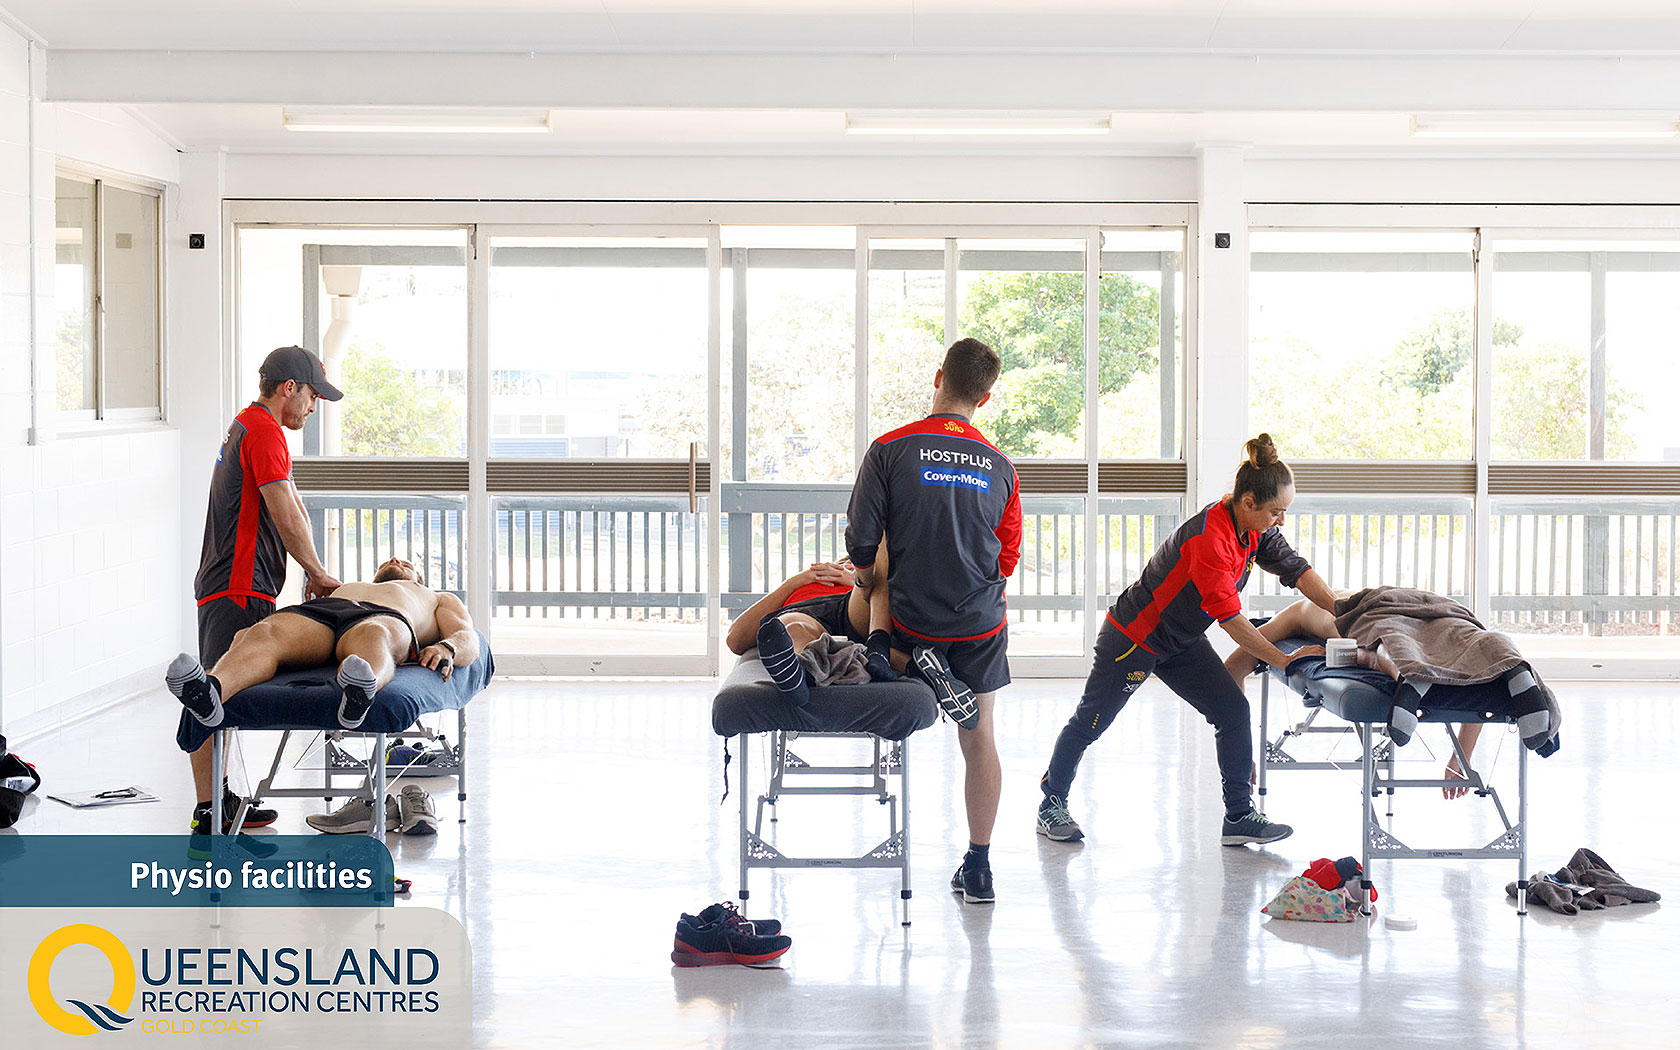 Athletes receiving physiotherapy treatments on massage tables at the Gold Coast Recreation Centre